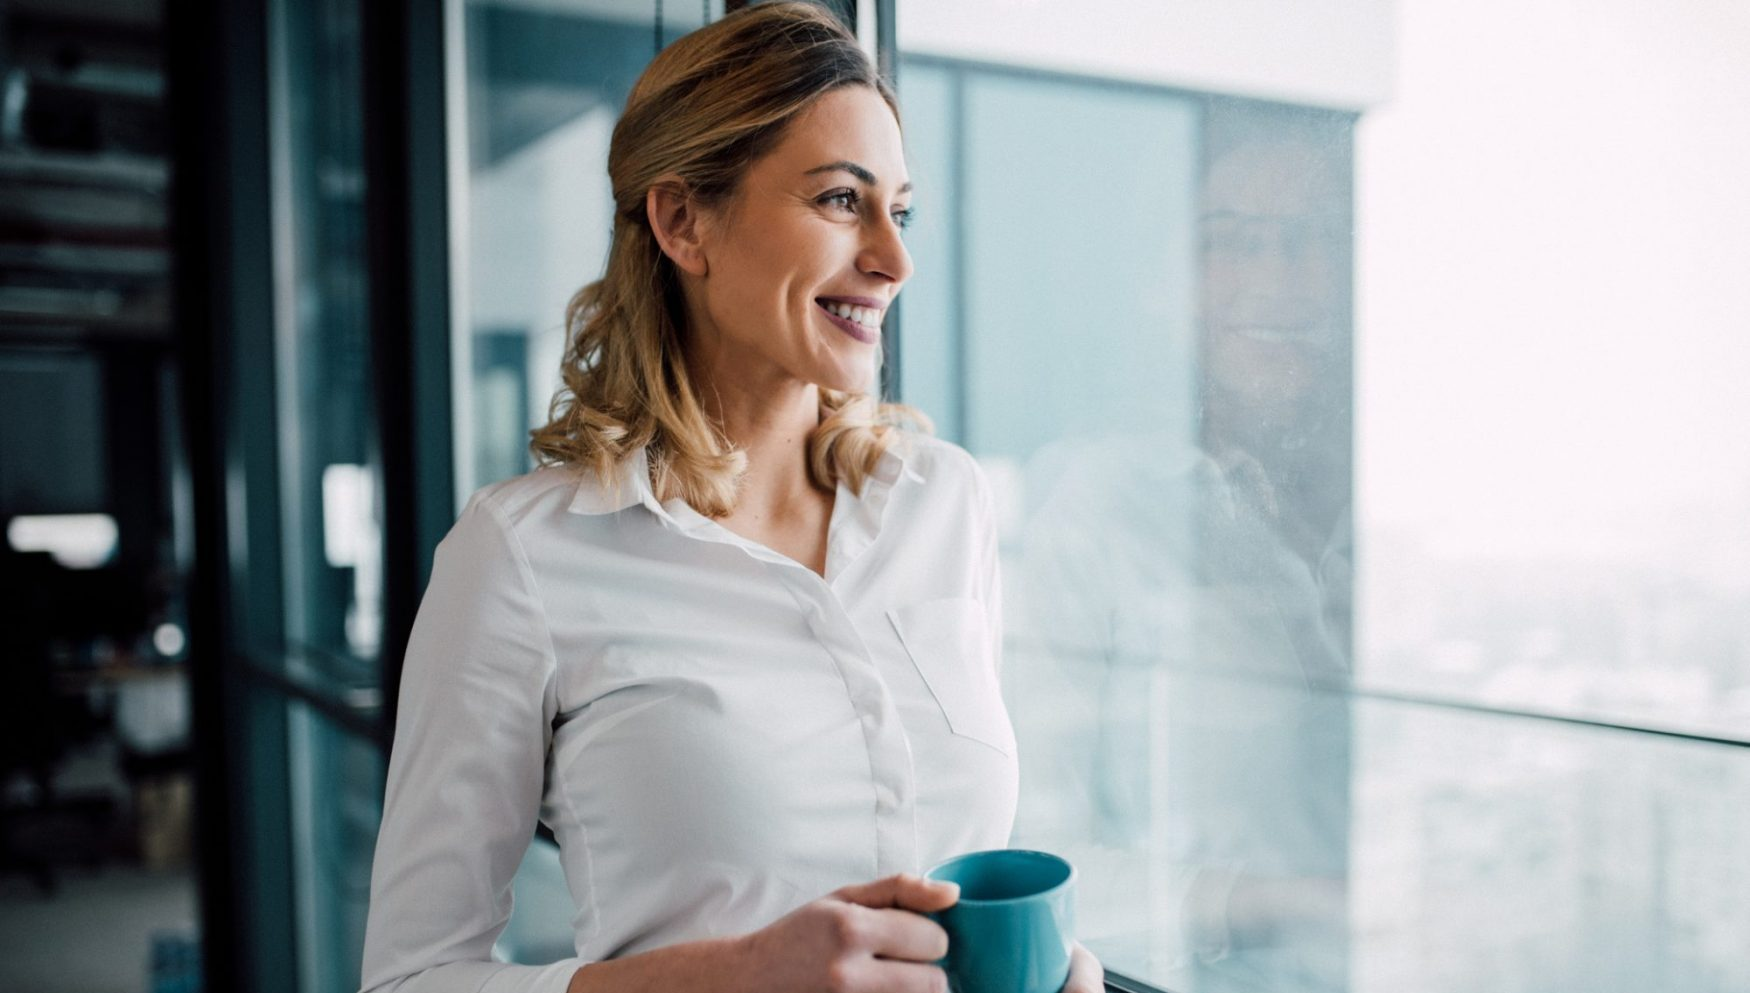 Young business woman looking through the office window with cup of coffee.